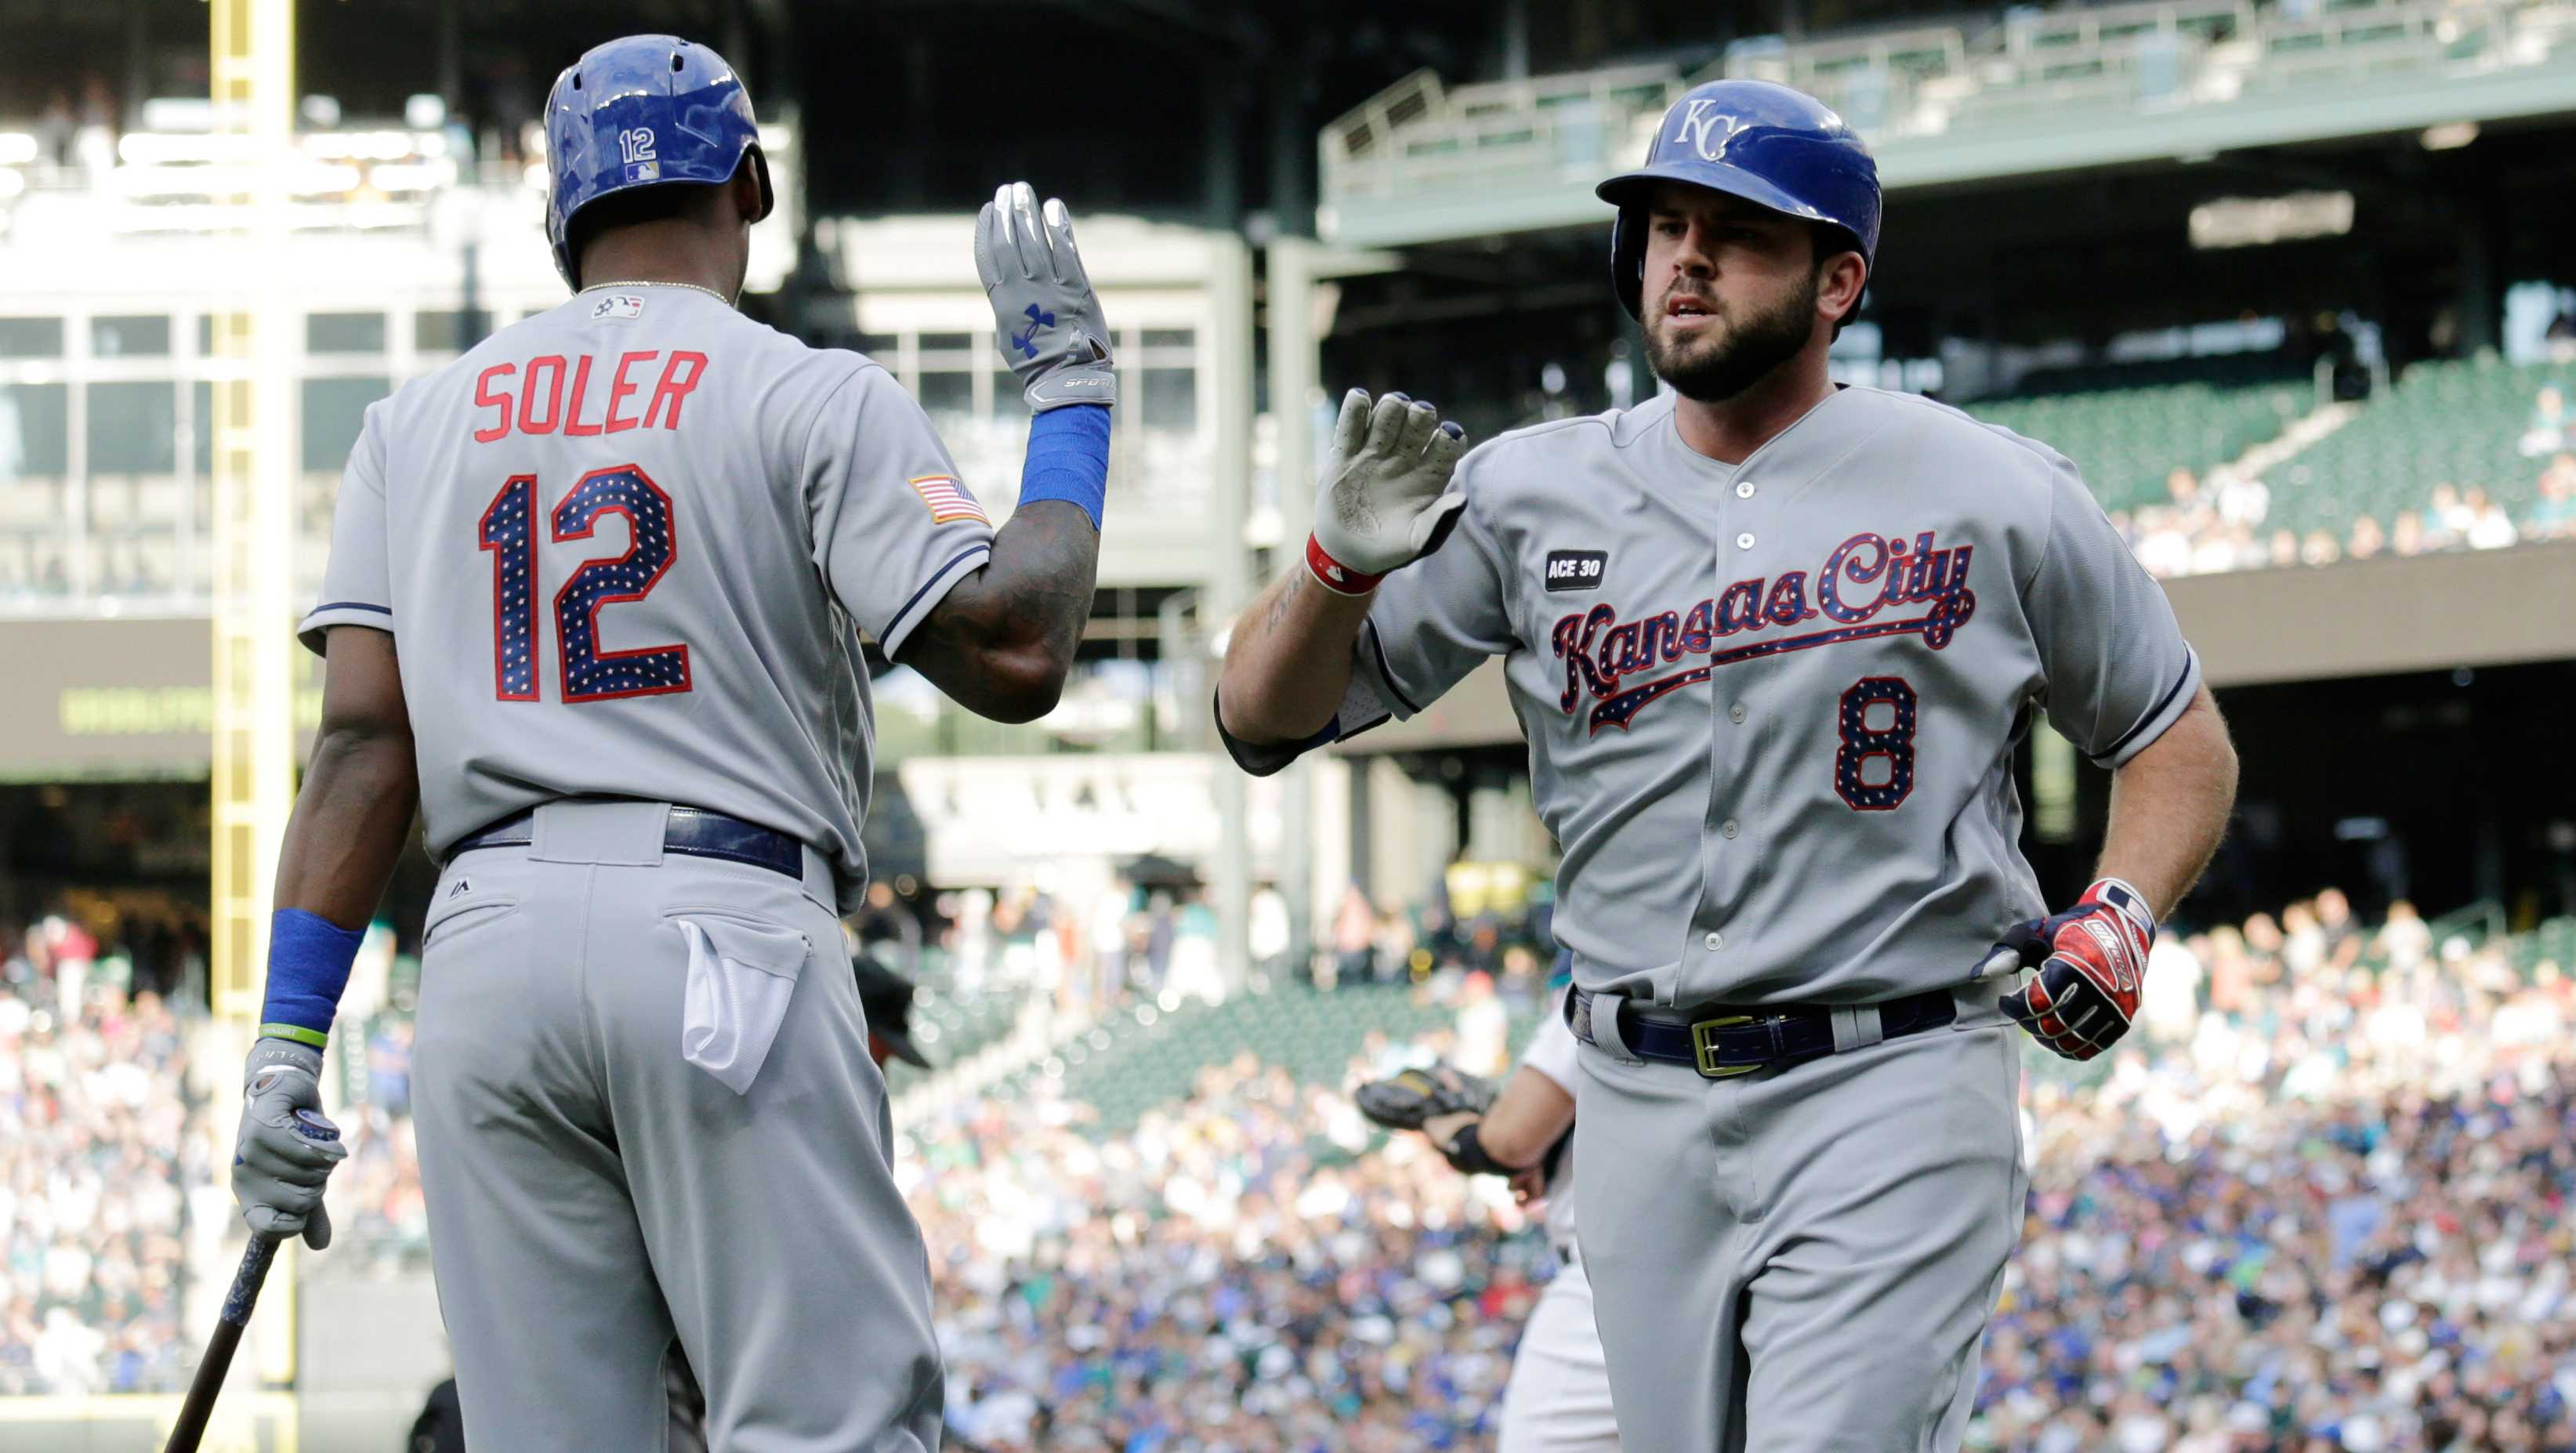 Kansas City Royals' Mike Moustakas, right, is greeted by Jorge Soler at home plate after hitting a solo home run against the Seattle Mariners during a baseball game, Monday, July 3, 2017, in Seattle. (AP Photo/John Froschauer)